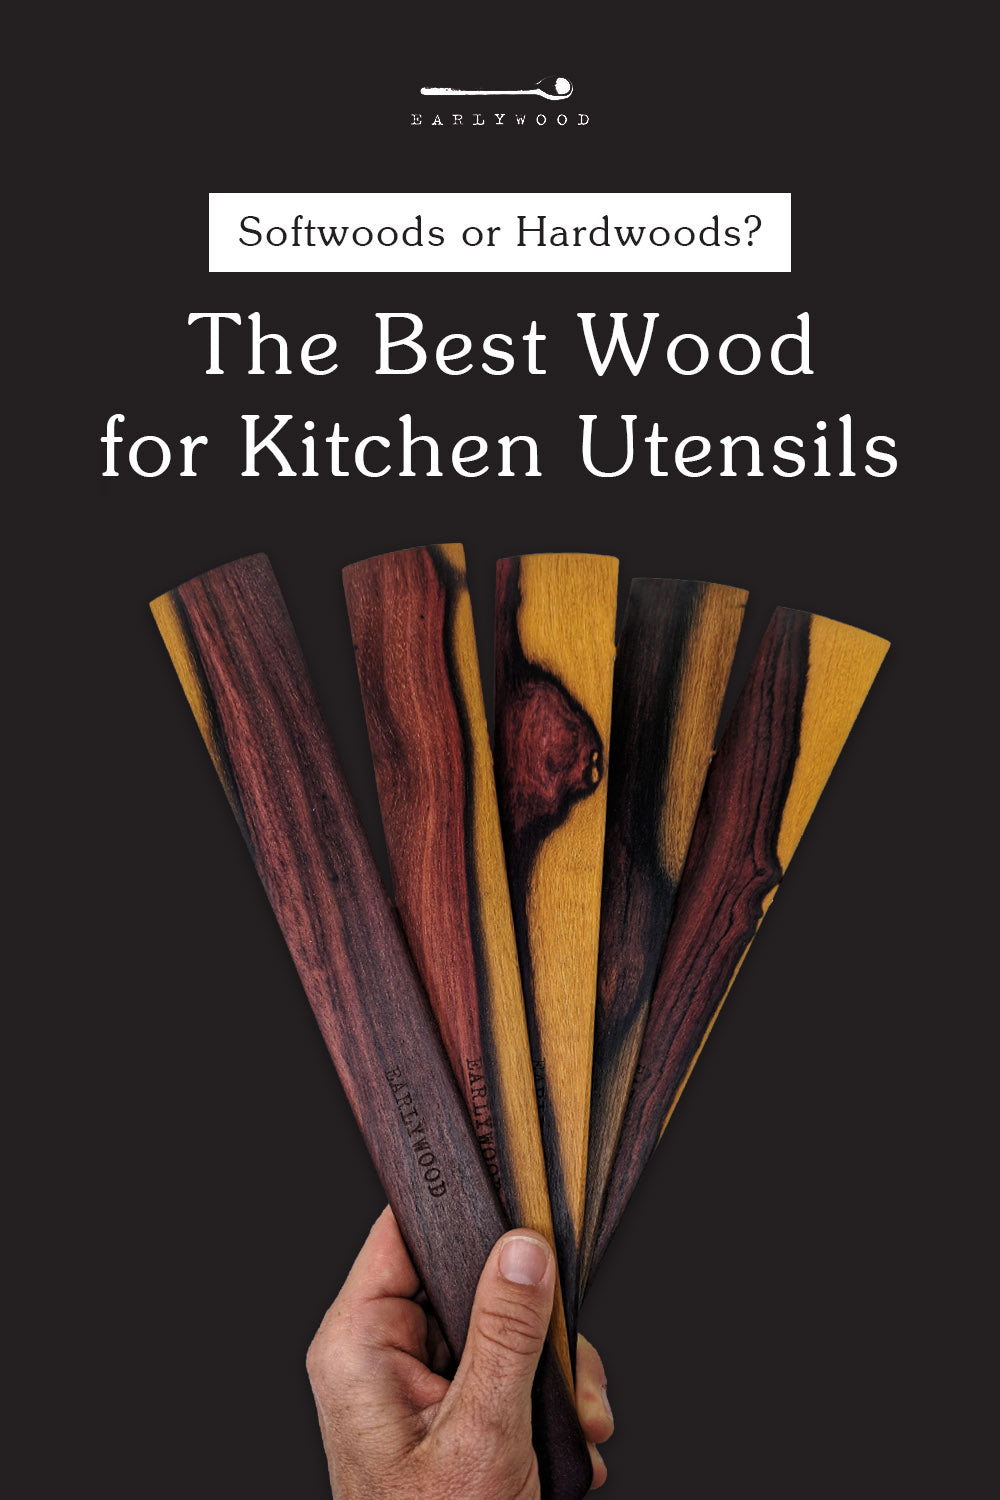 Hand holding flat wooden spatulas with unique patterns